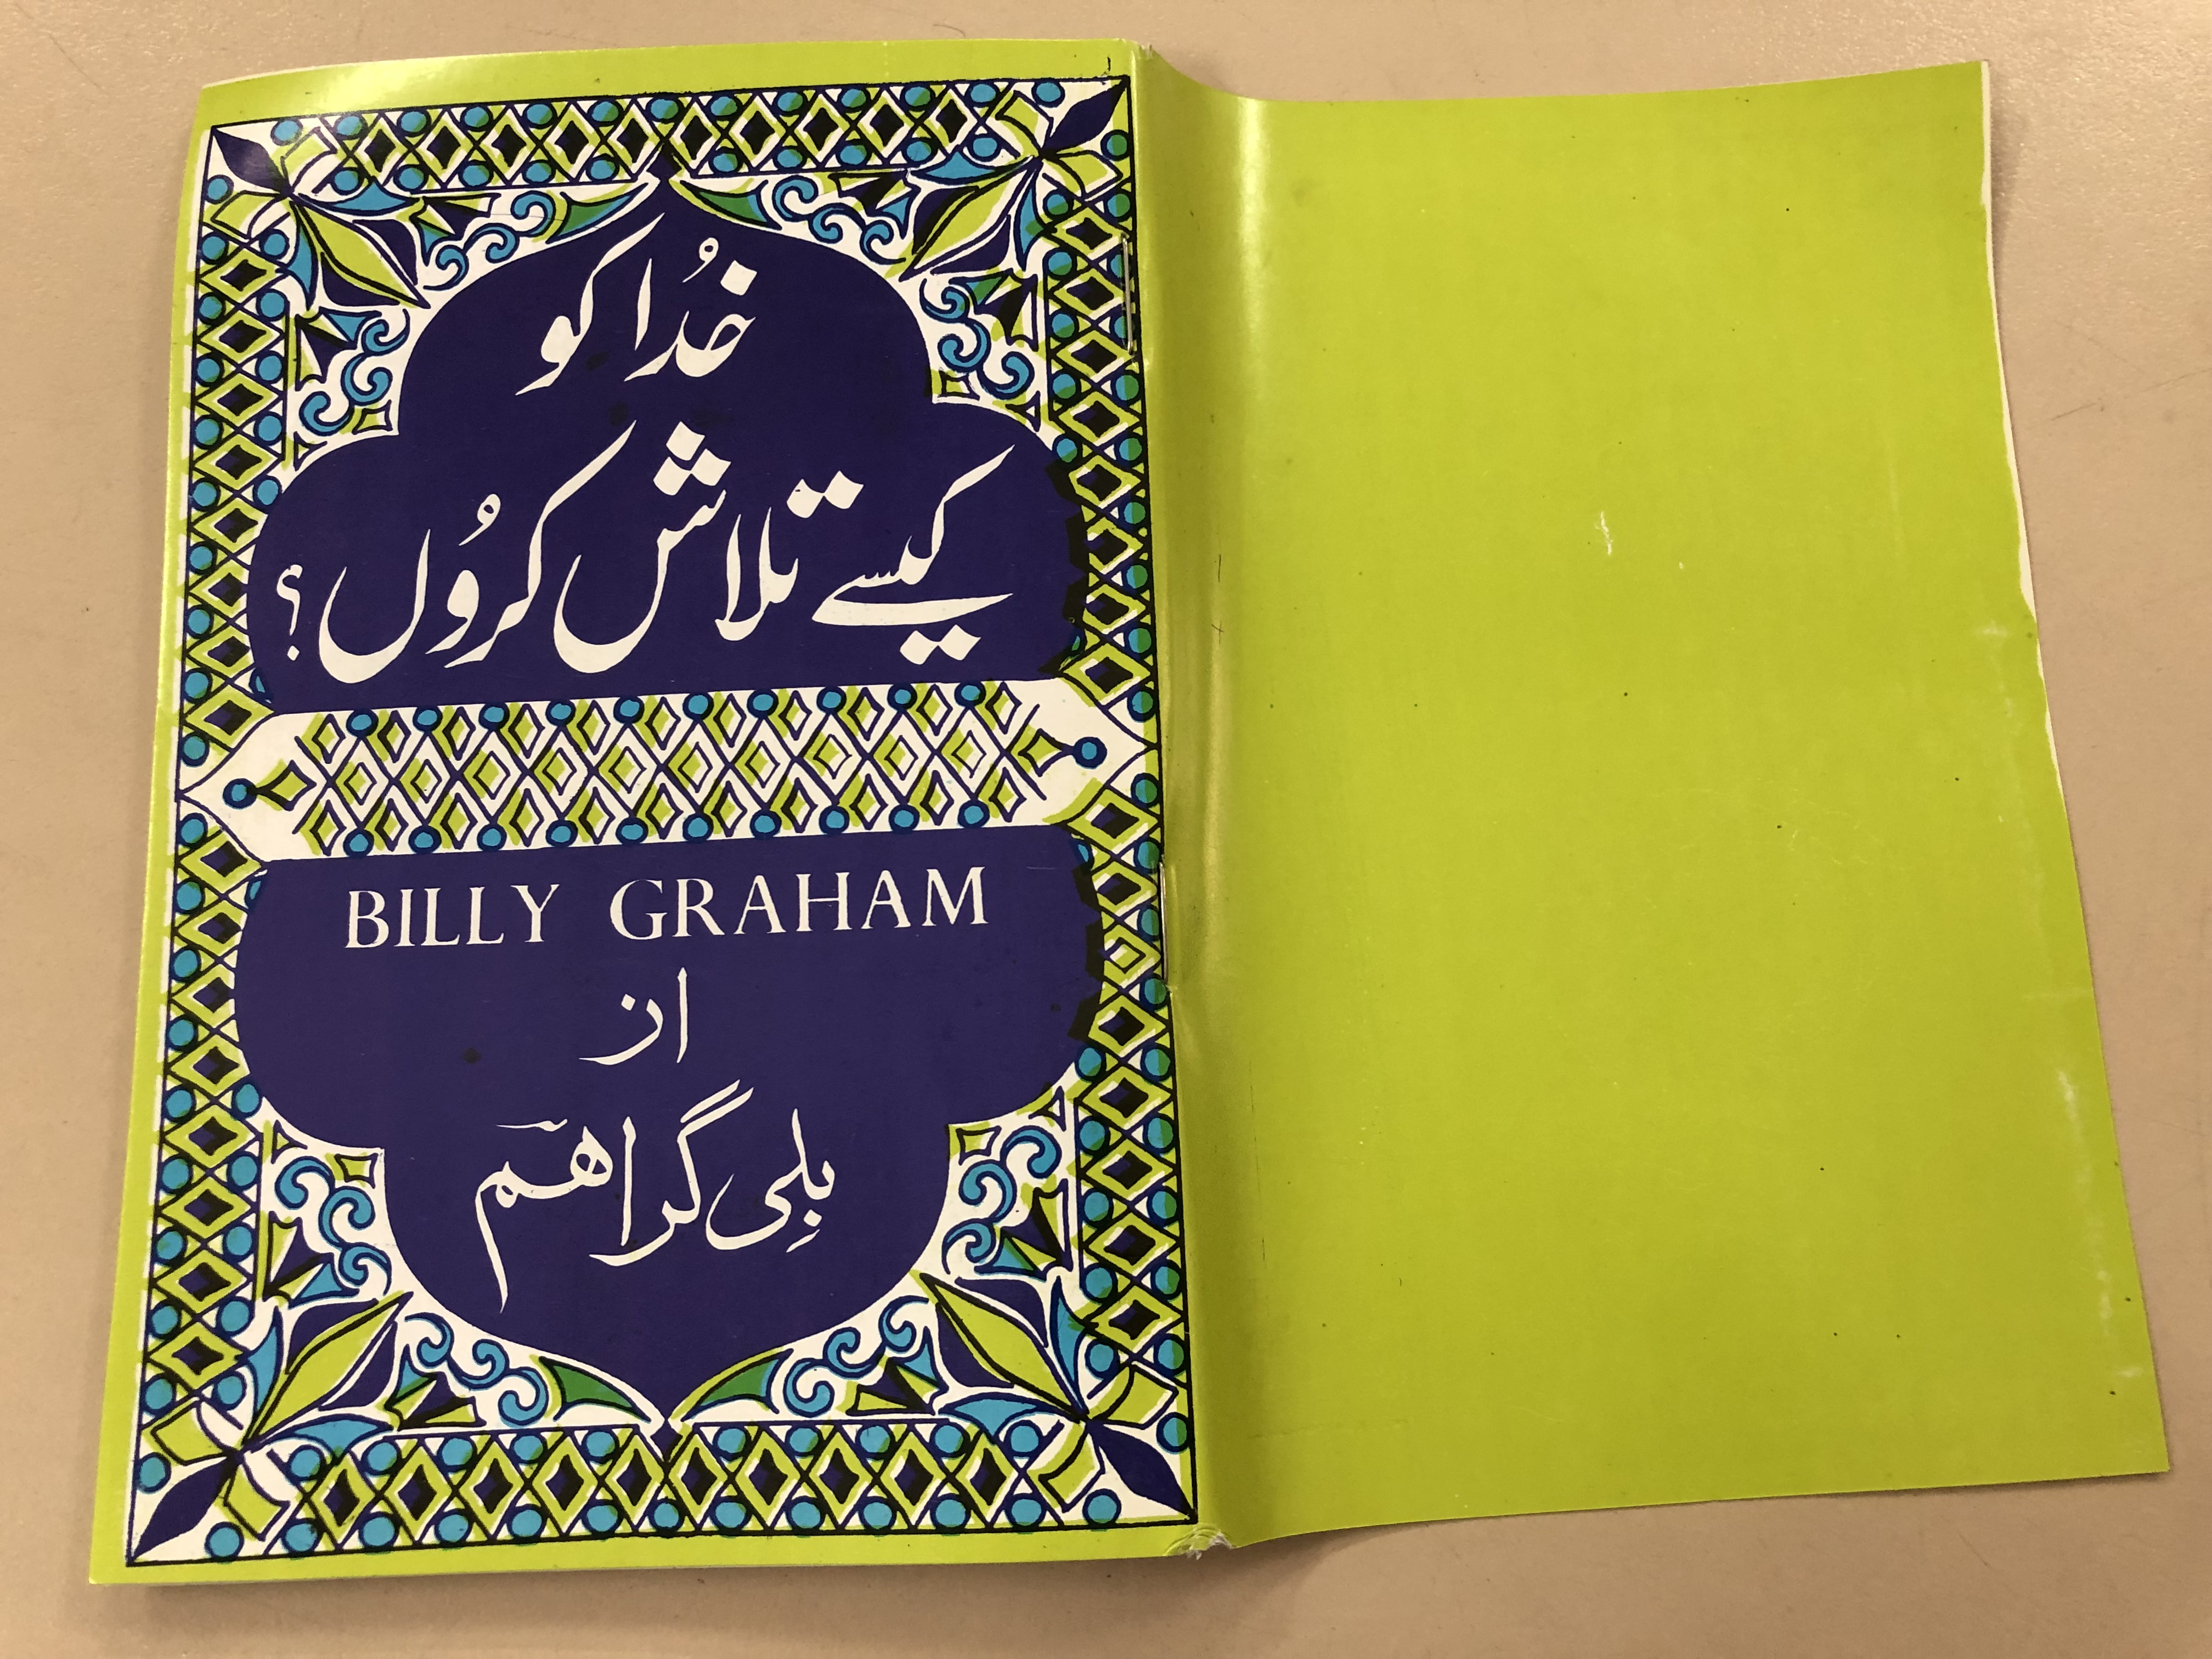 six-chapters-from-peace-with-god-by-billy-graham-in-urdu-9-.jpg